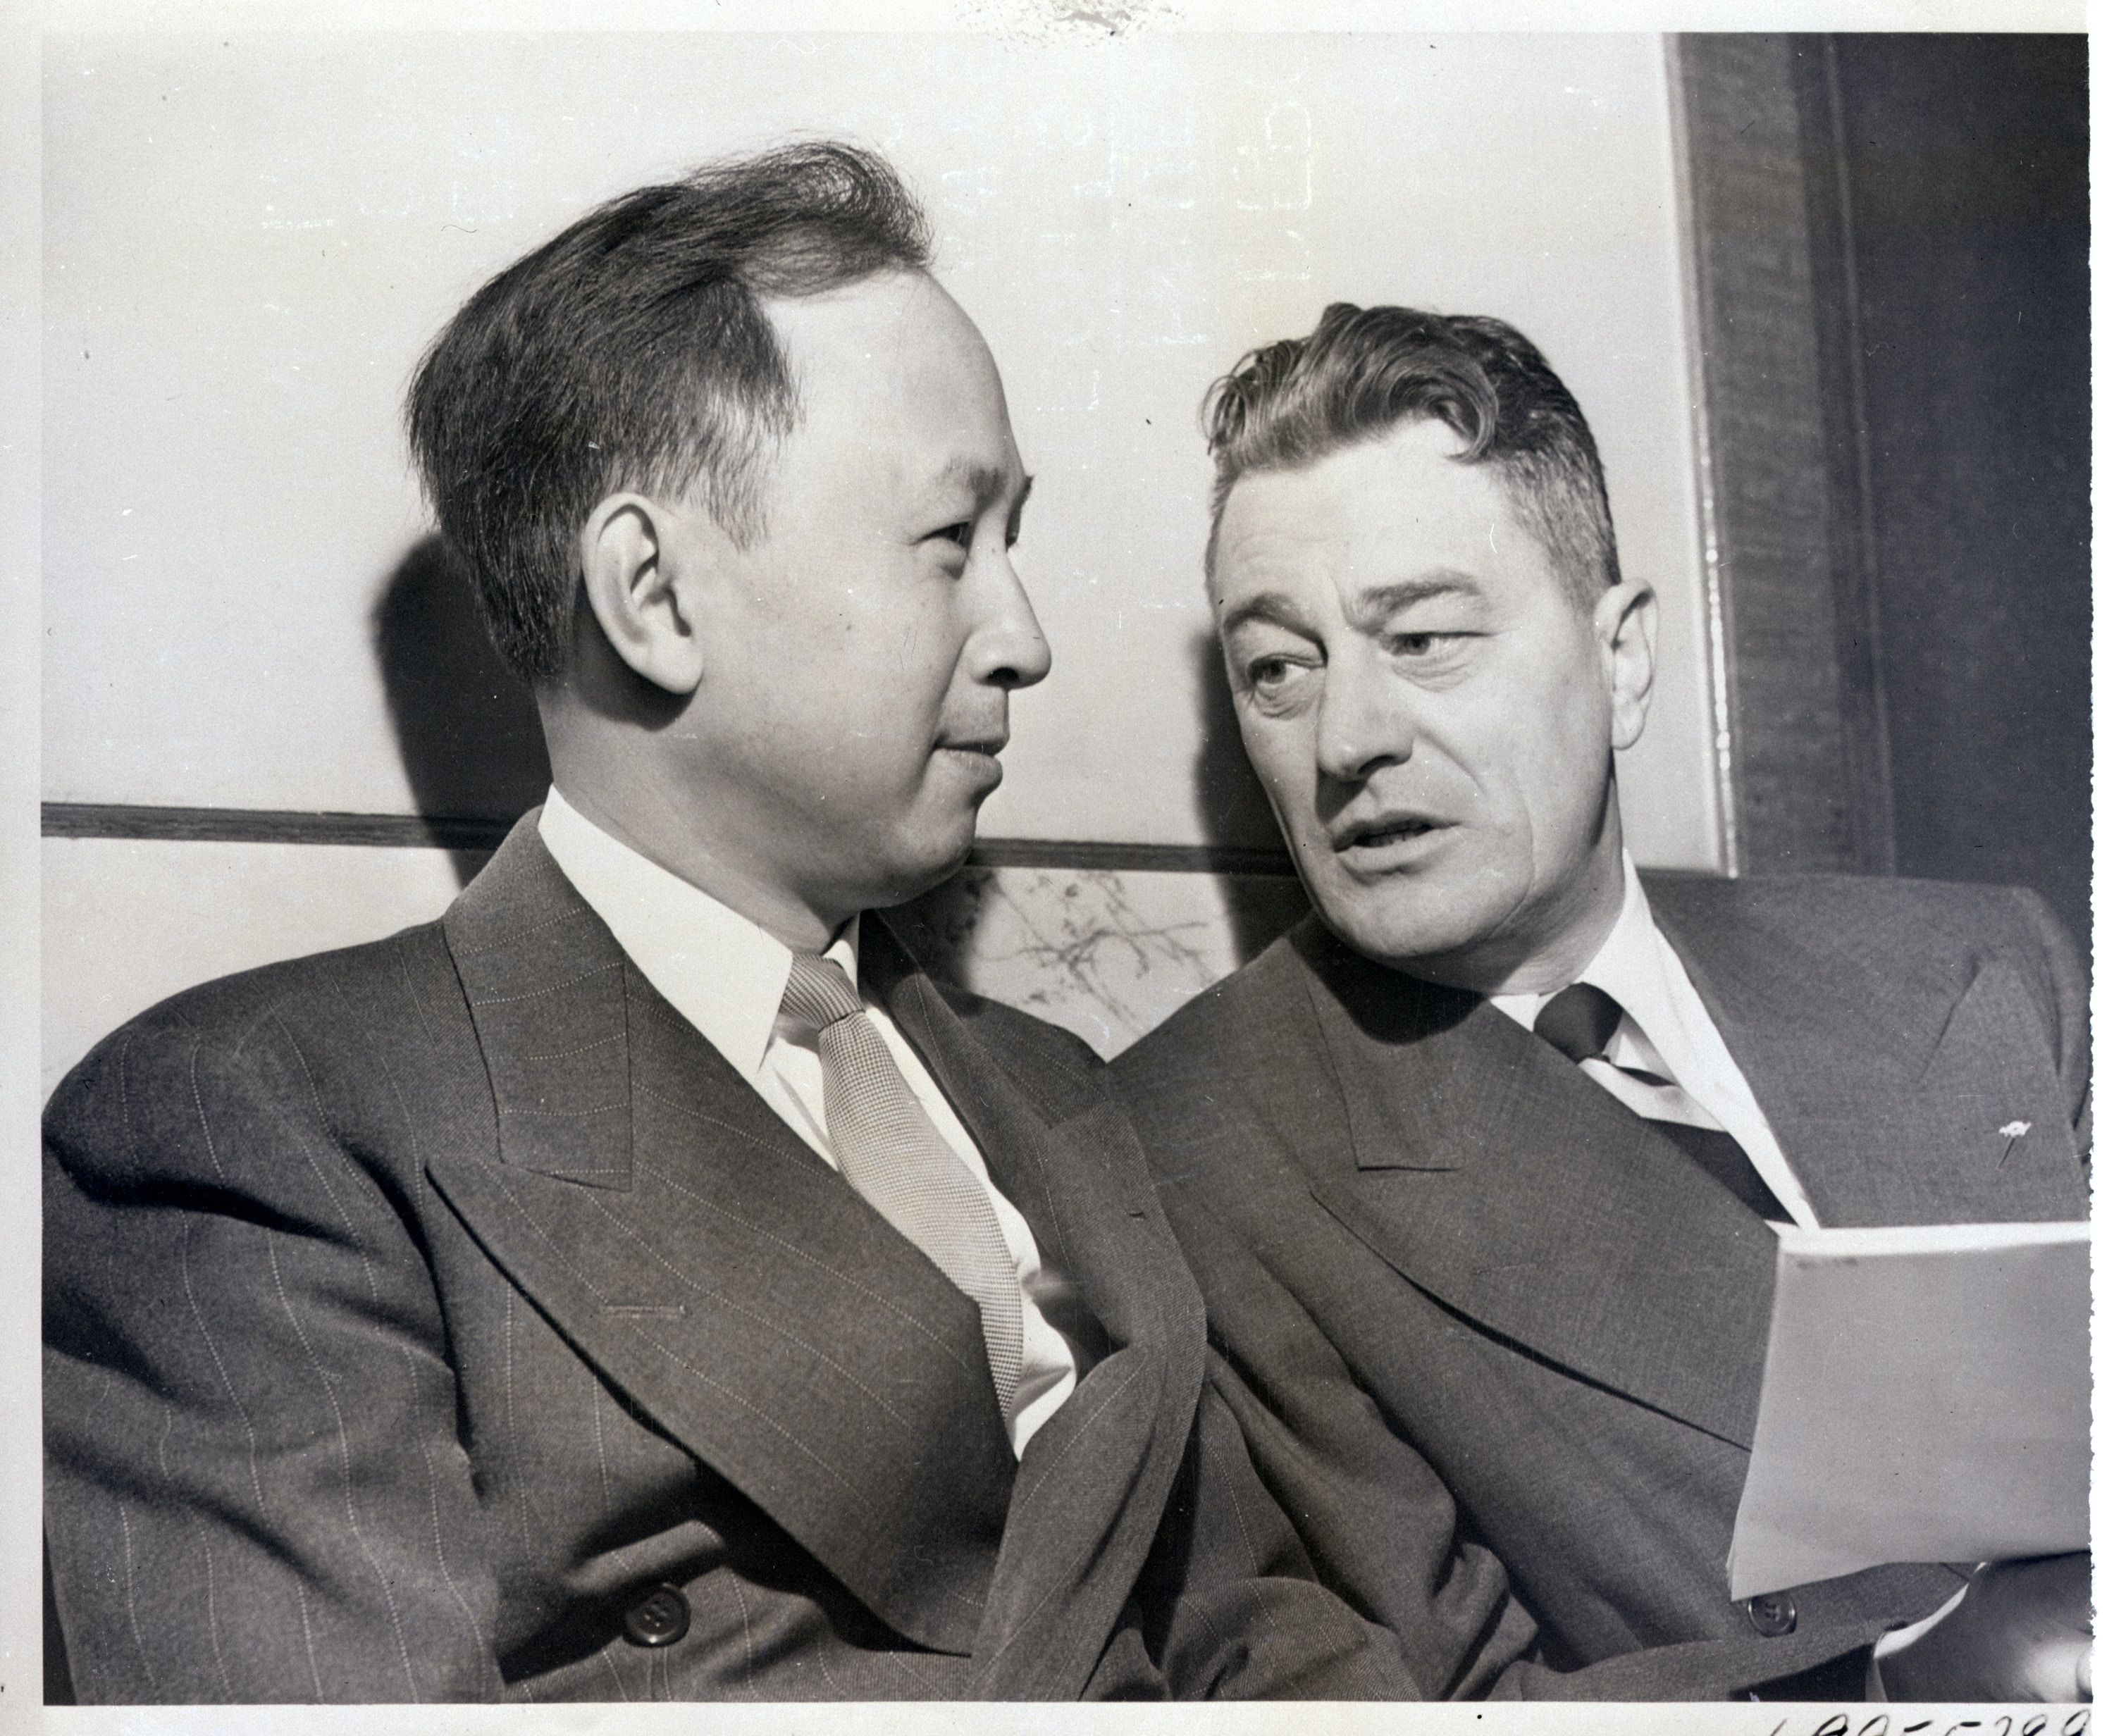 (Original Caption) 11/16/1950- Los Angeles, CA- Dr. Hsue-Shen Tsien (left), Director of Caltech's Jet Propulsion Center, confers with his lawyer, Grant B. Cooper, during his deportation hearing. The Government is charging that Dr. Tsien was a Communist when he entered the United States in 1935. He was arrested last September after a large shipment of technical matter was seized by immigration officials.